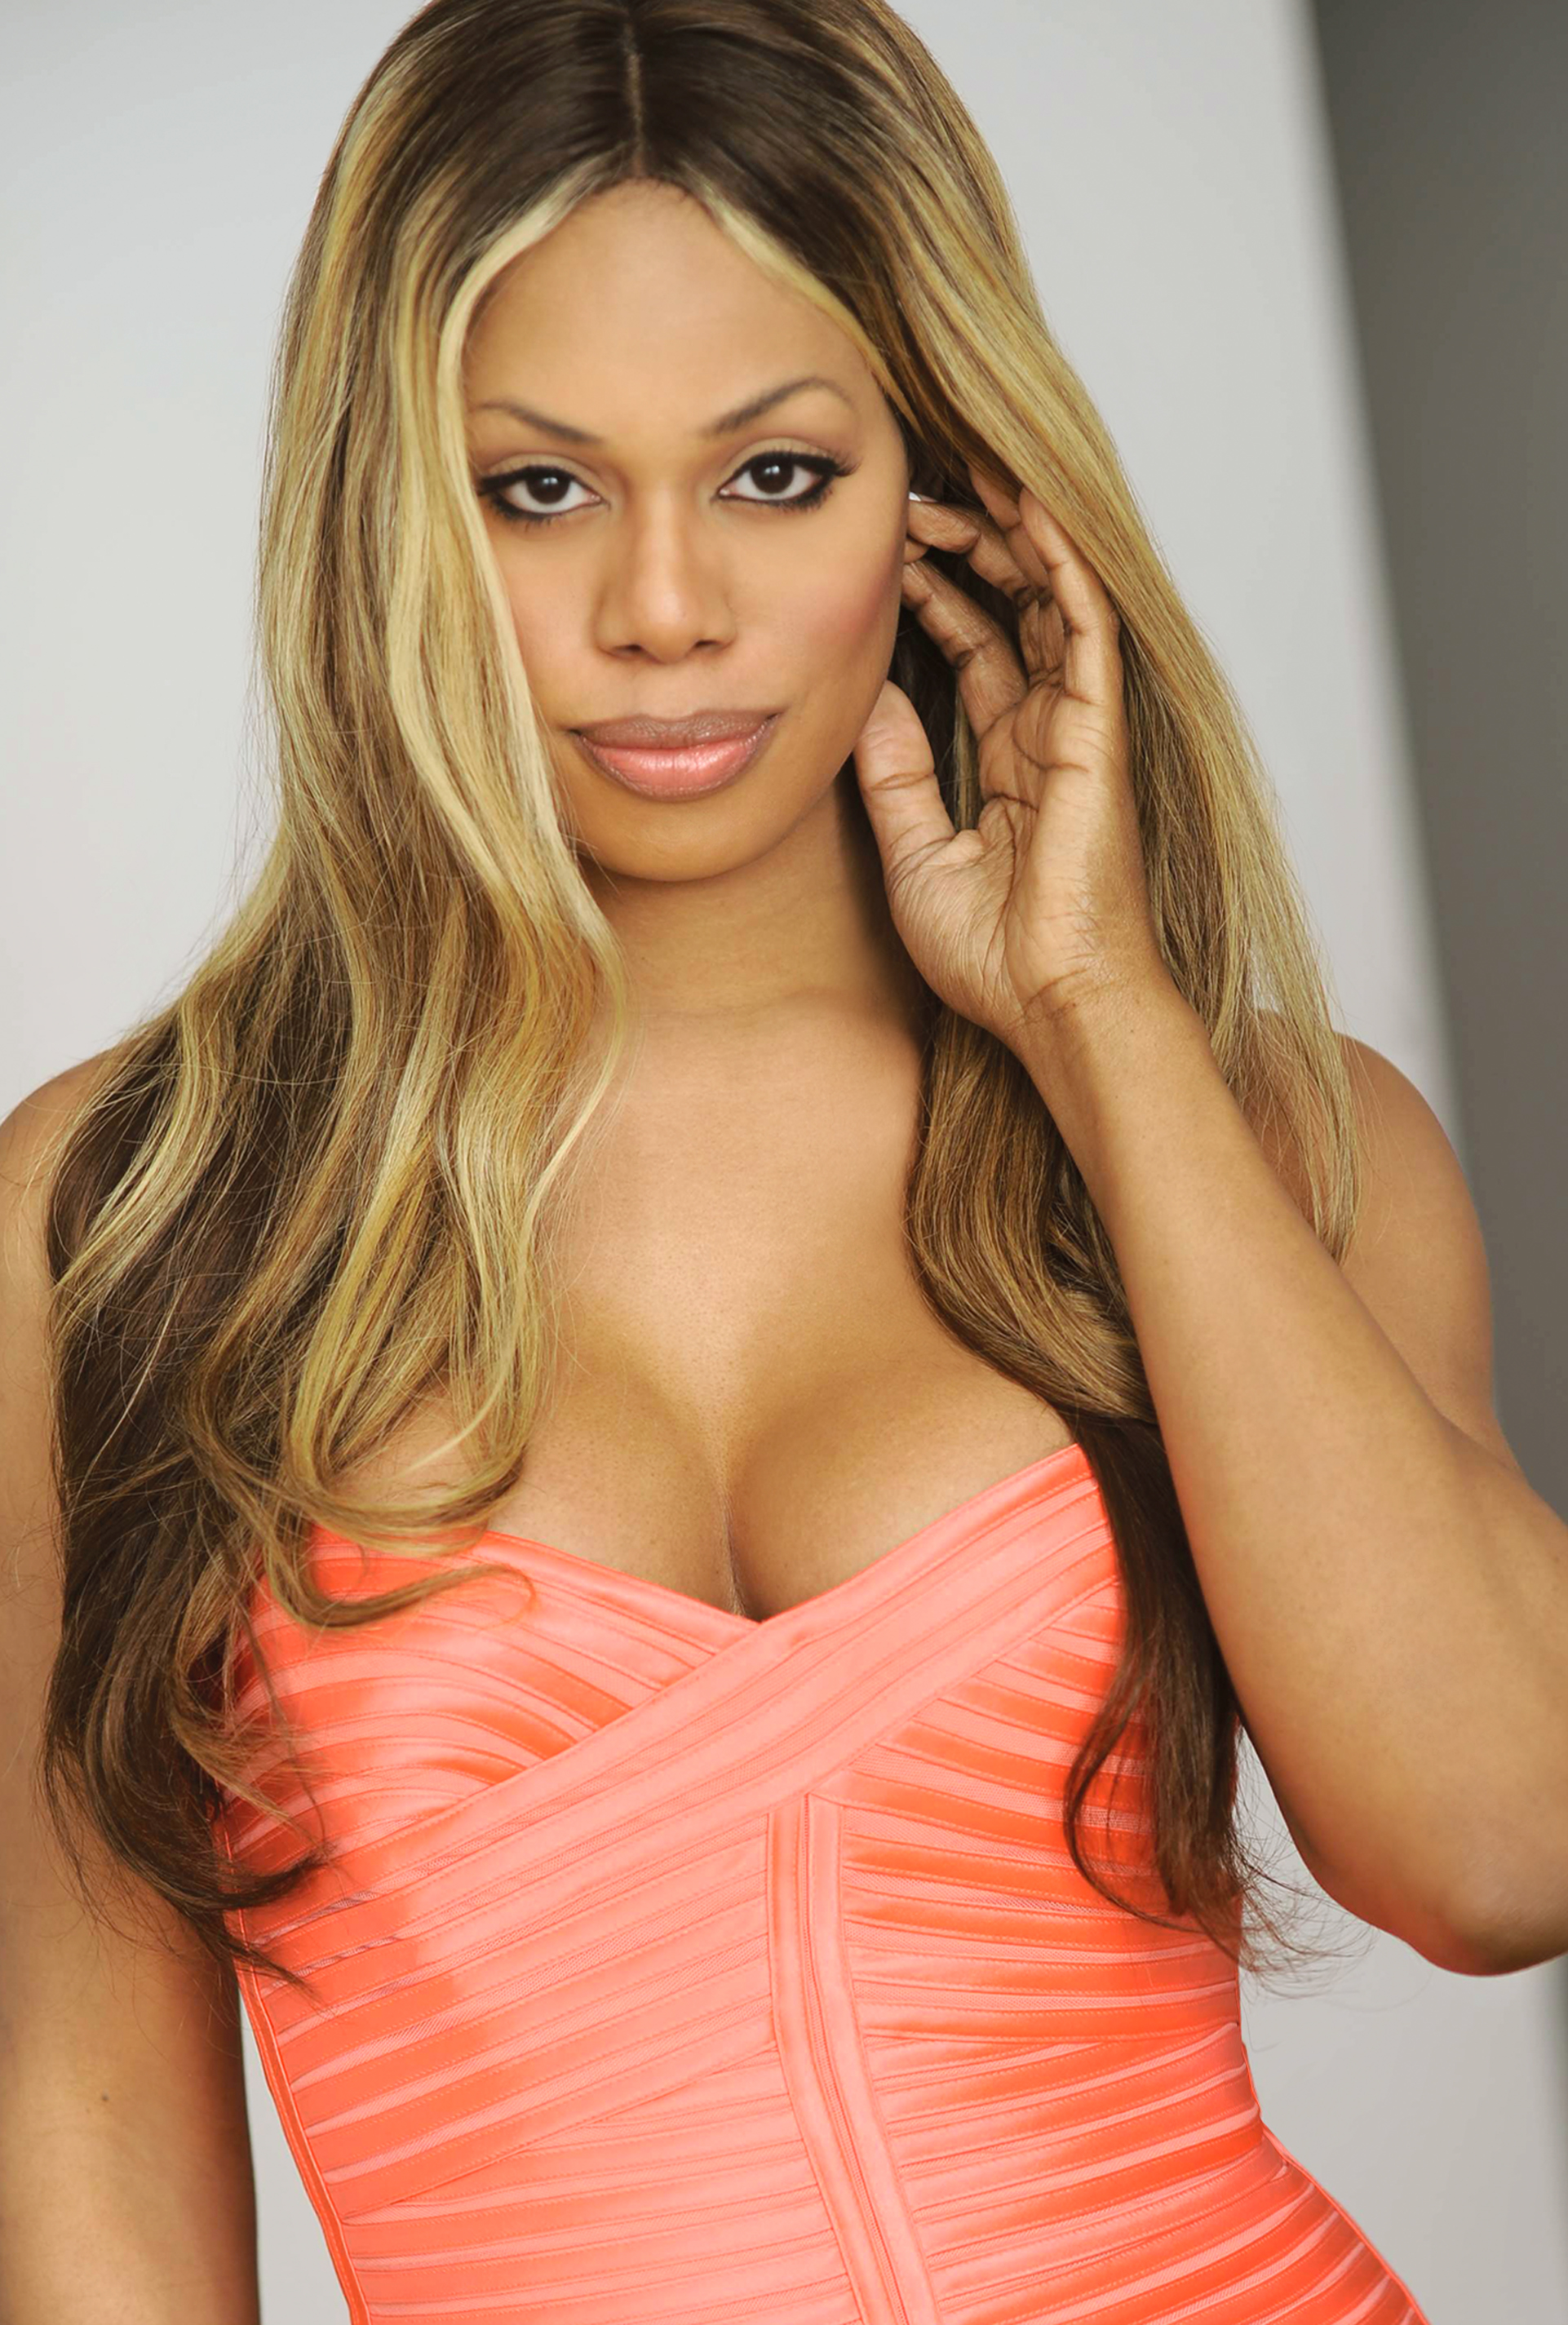 laverne cox emmylaverne cox brother, laverne cox рост, laverne cox orange is the new black, laverne cox rocky horror, laverne cox wiki, laverne cox grammy, laverne cox weight loss, laverne cox horror, laverne cox imdb, laverne cox emmy, laverne cox hawtcelebs, laverne cox time magazine, laverne cox vs. samira wiley, laverne cox interview, laverne cox insta, laverne cox james corden, laverne cox metallica, laverne cox twitter, laverne cox instagram, laverne cox net worth